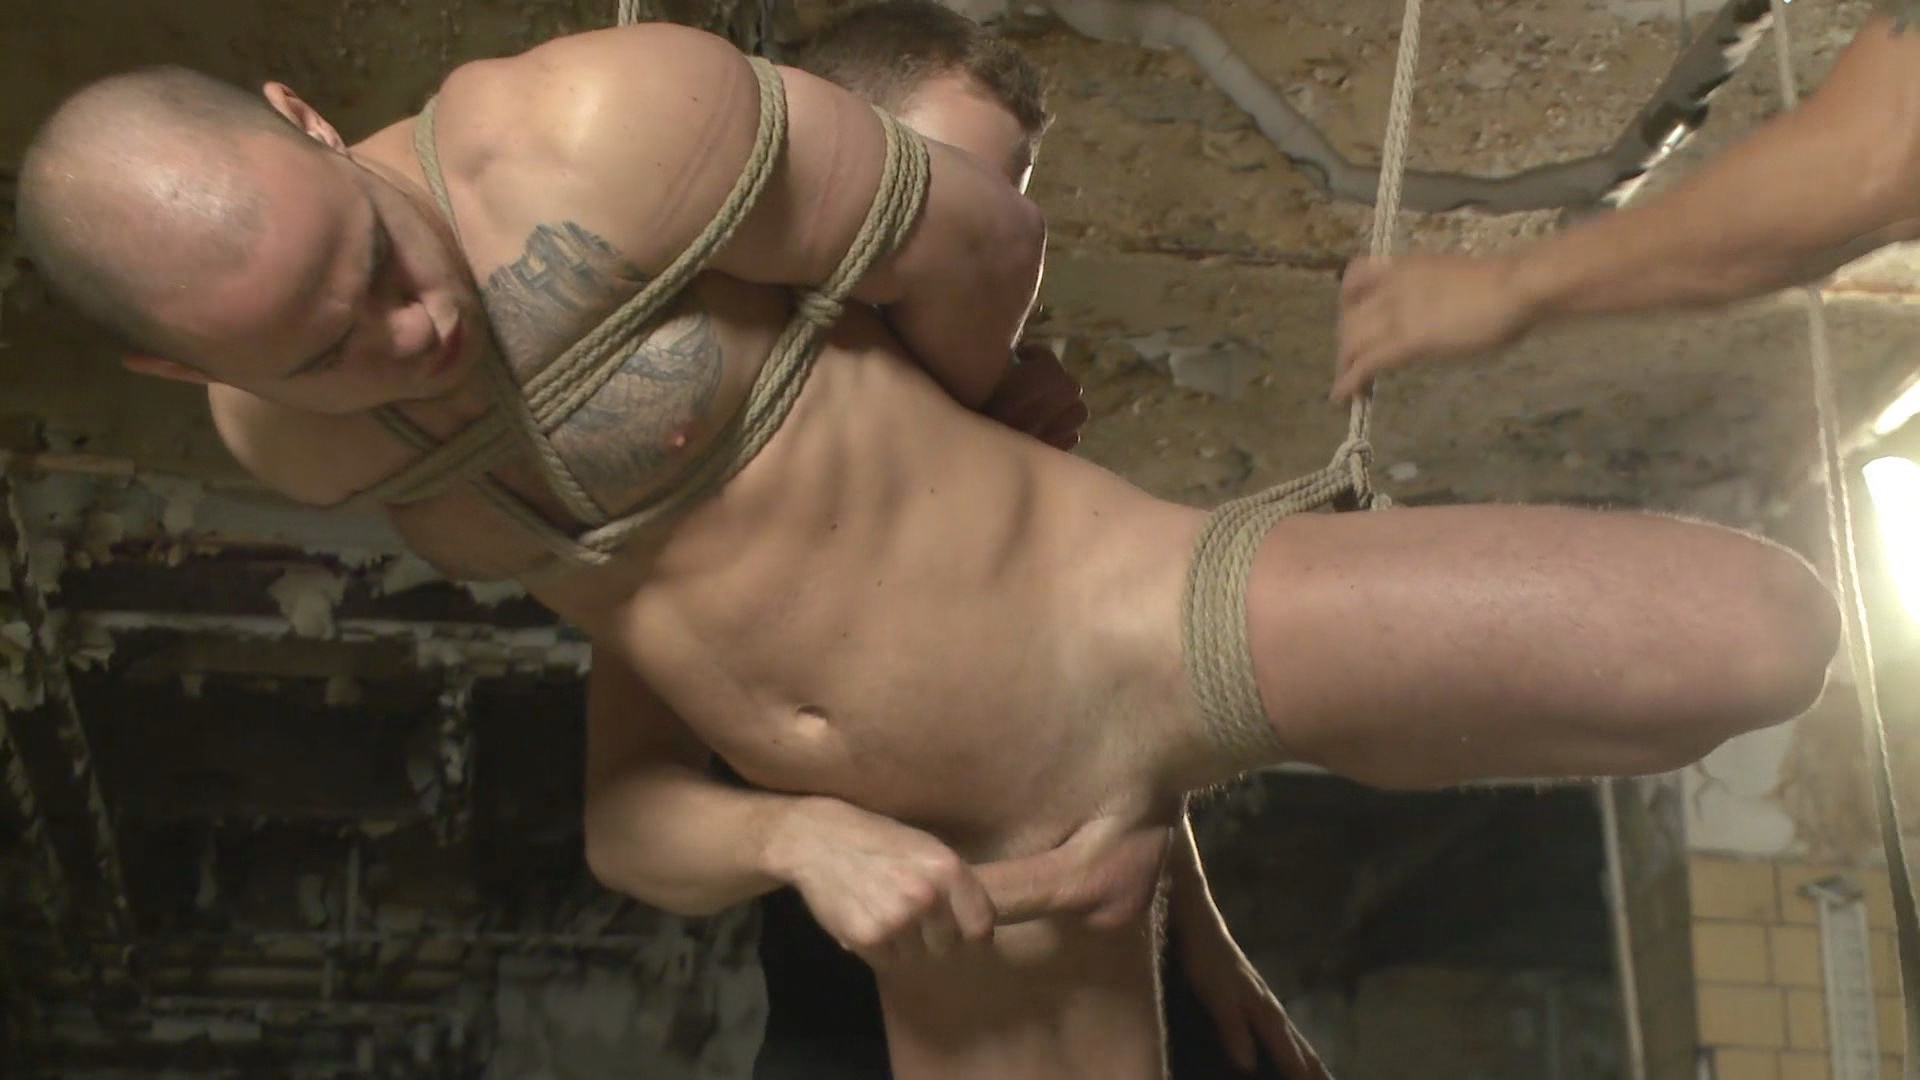 Men On Edge: Straight German Stud Gets Edged While His Girlfriend Watches